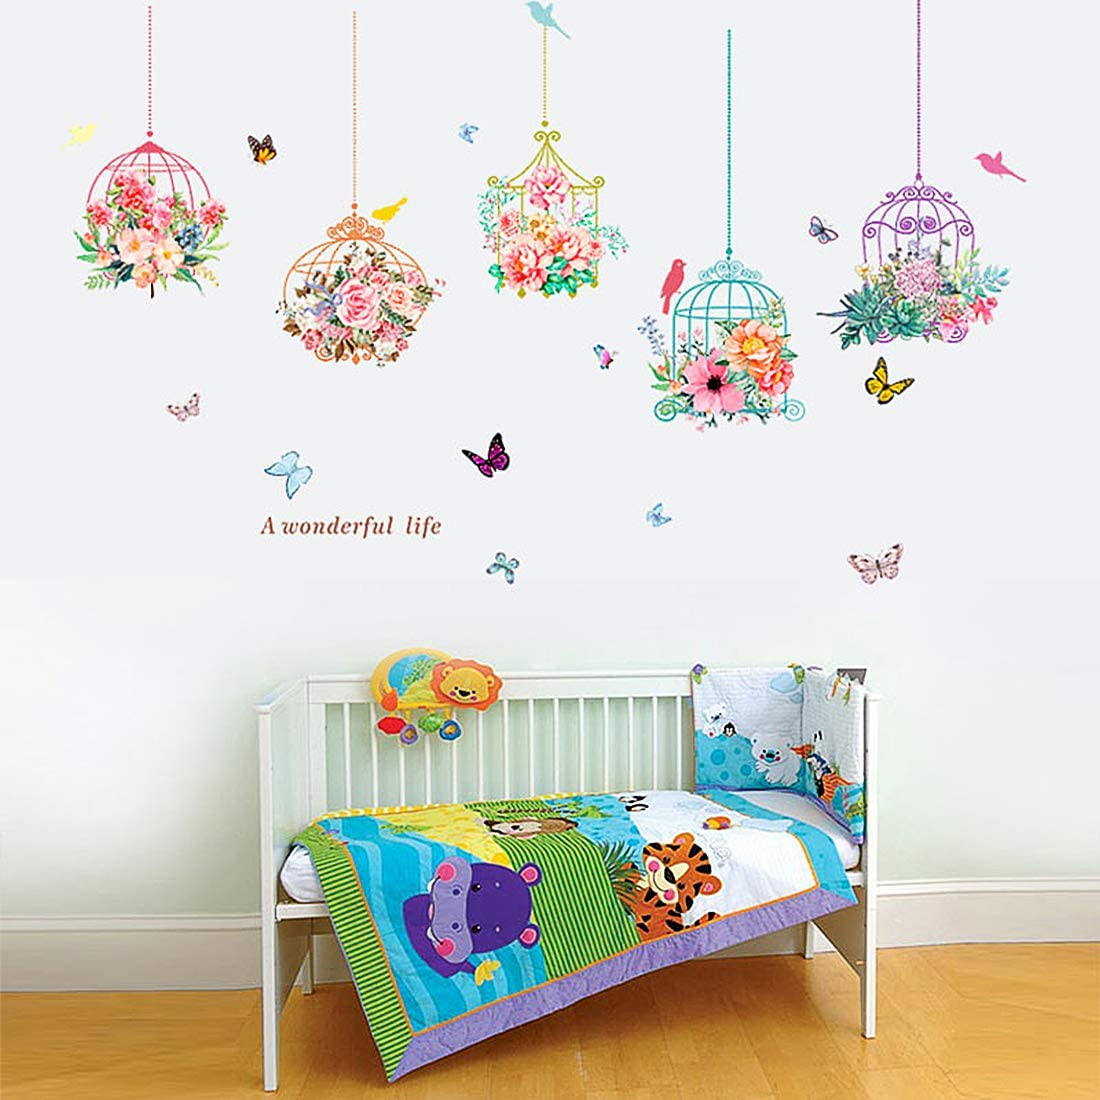 Flower Butterfly Bonsai Wall Stickers Removable Vinyl Birdcage Plants Wall Decal for Kids Bedroom Family Living Room Decorative